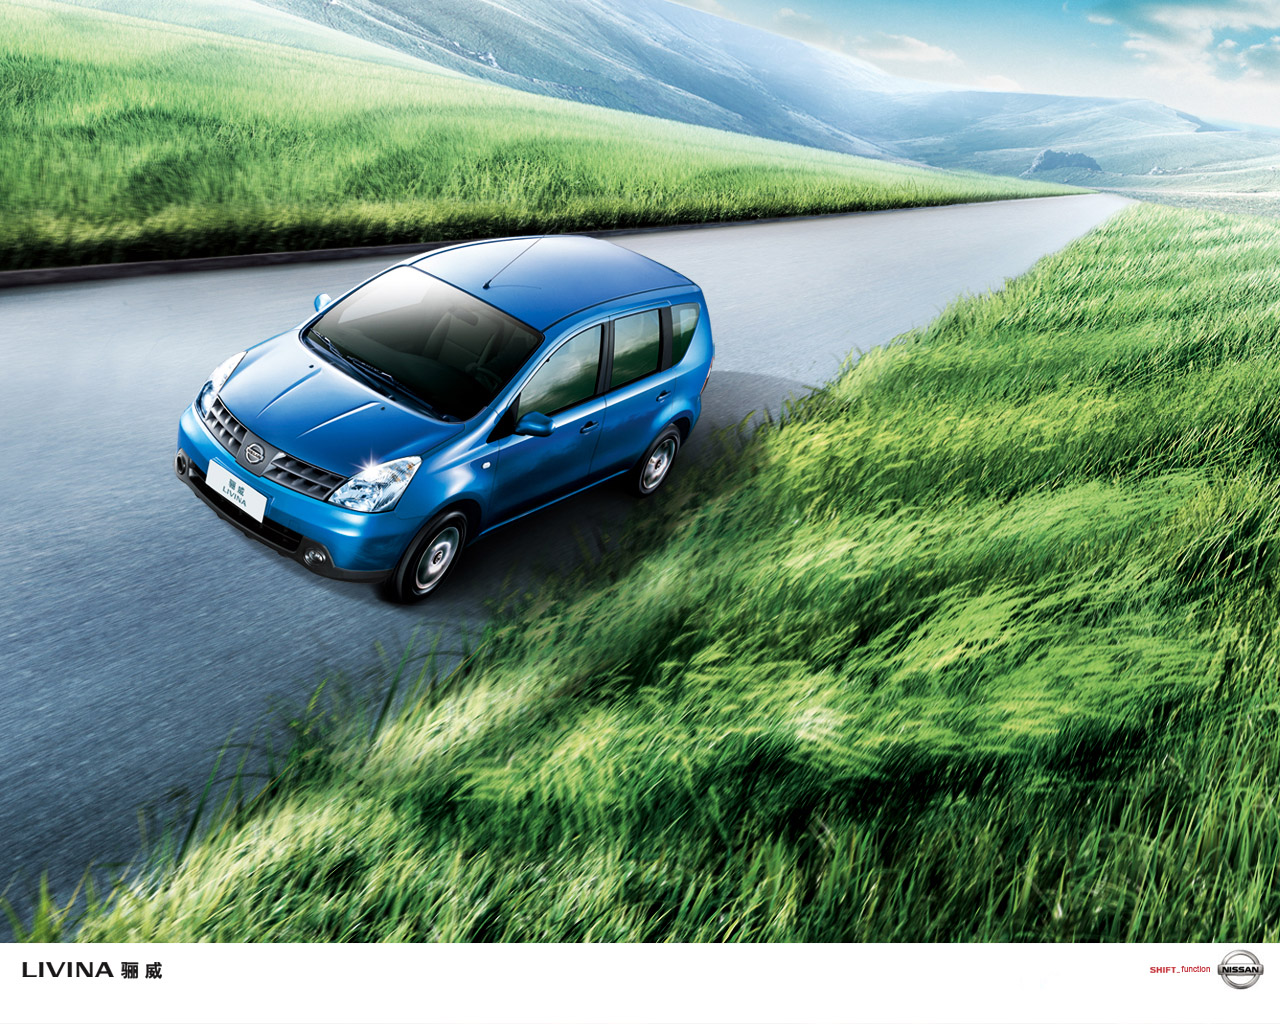 Dongfeng Nissan Wallpapers 16033